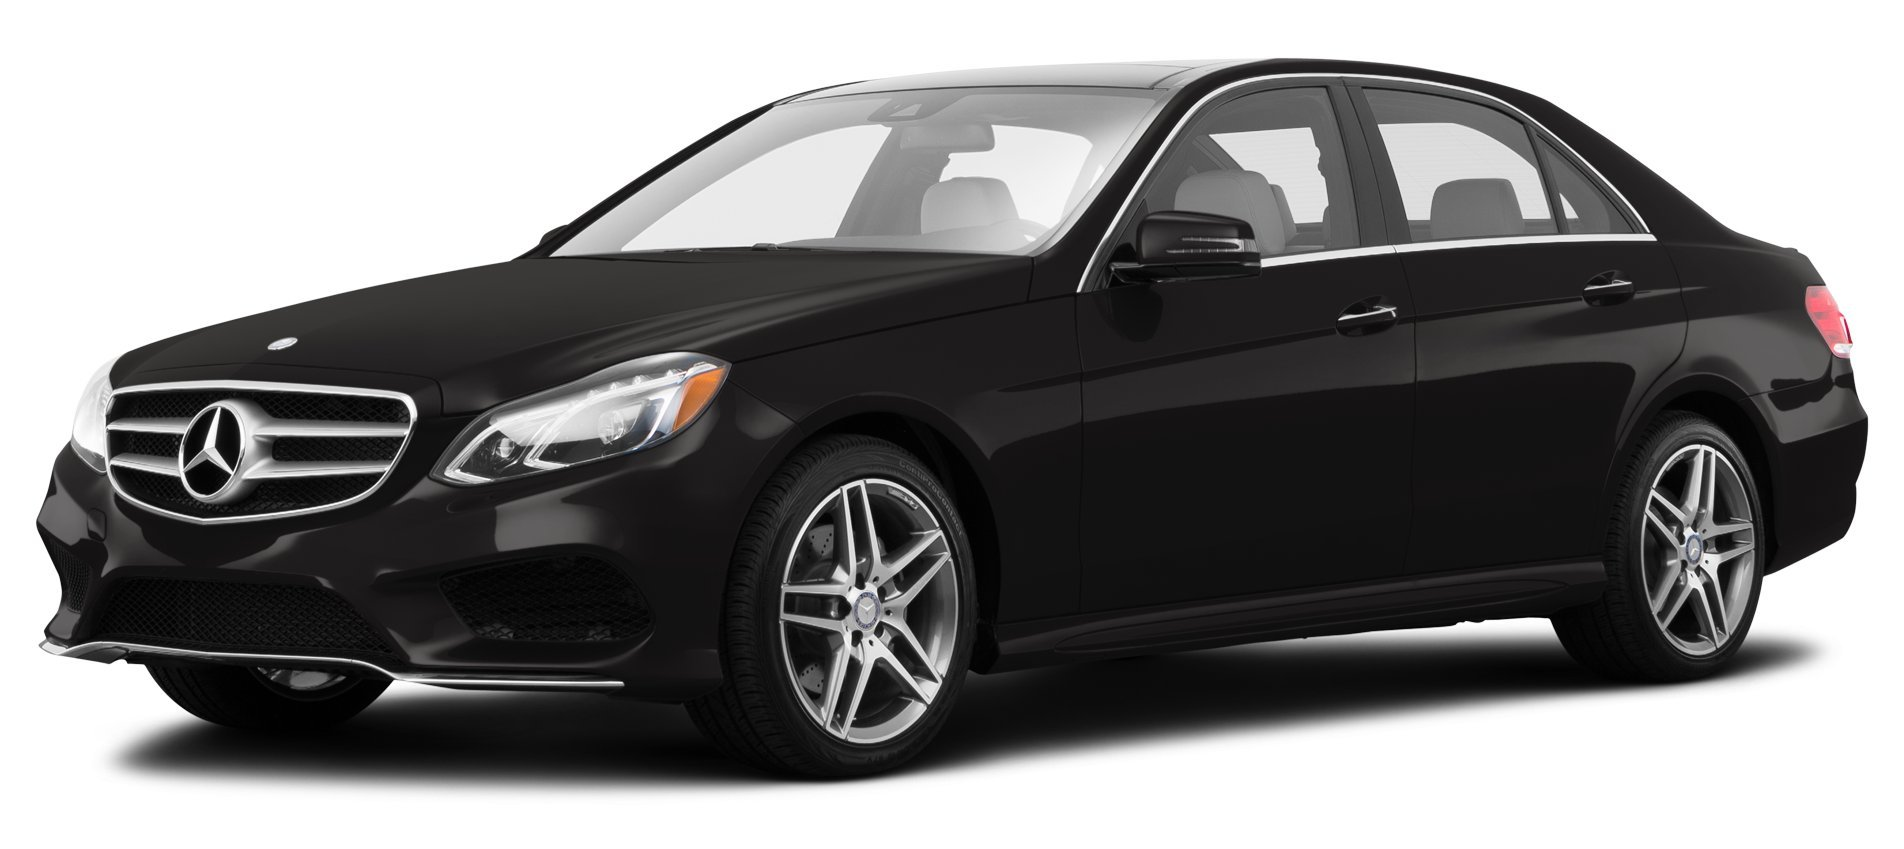 2016 Mercedes Benz Amg E 63 Sedan >> Amazon Com 2016 Mercedes Benz E63 Amg S Reviews Images